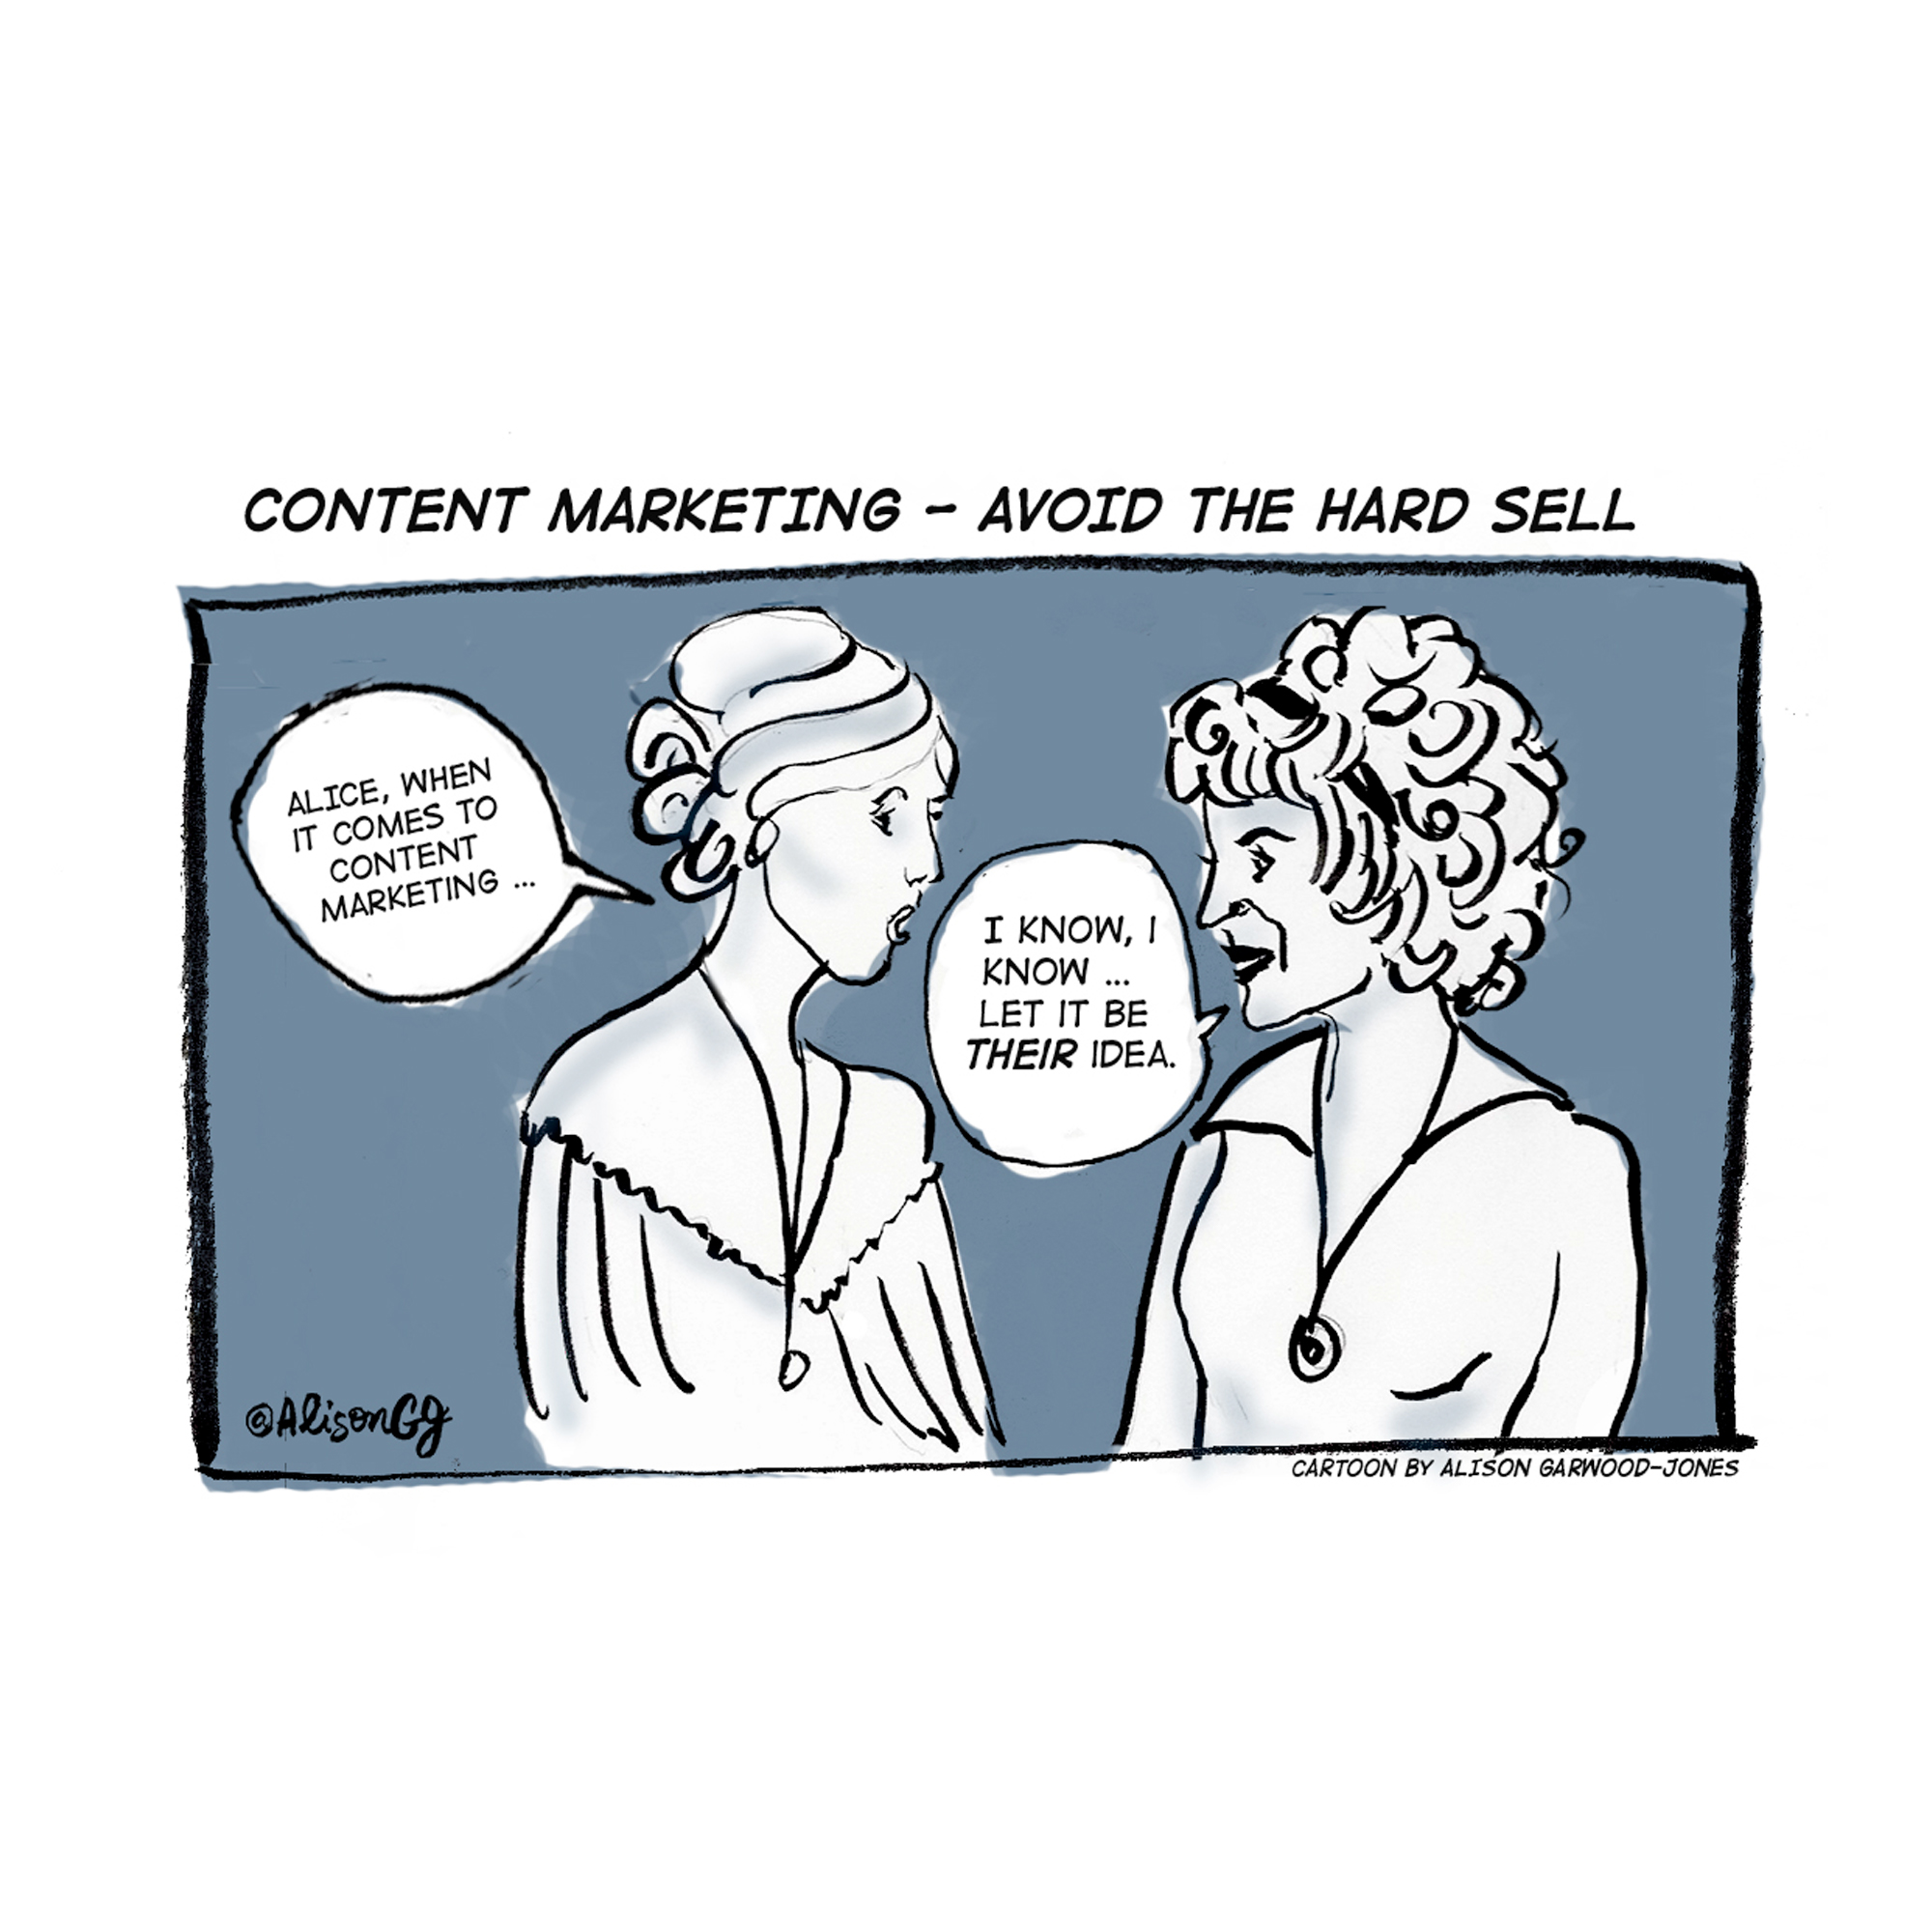 Avoid the hard sell - content marketing cartoon by Alison Garwood-Jones